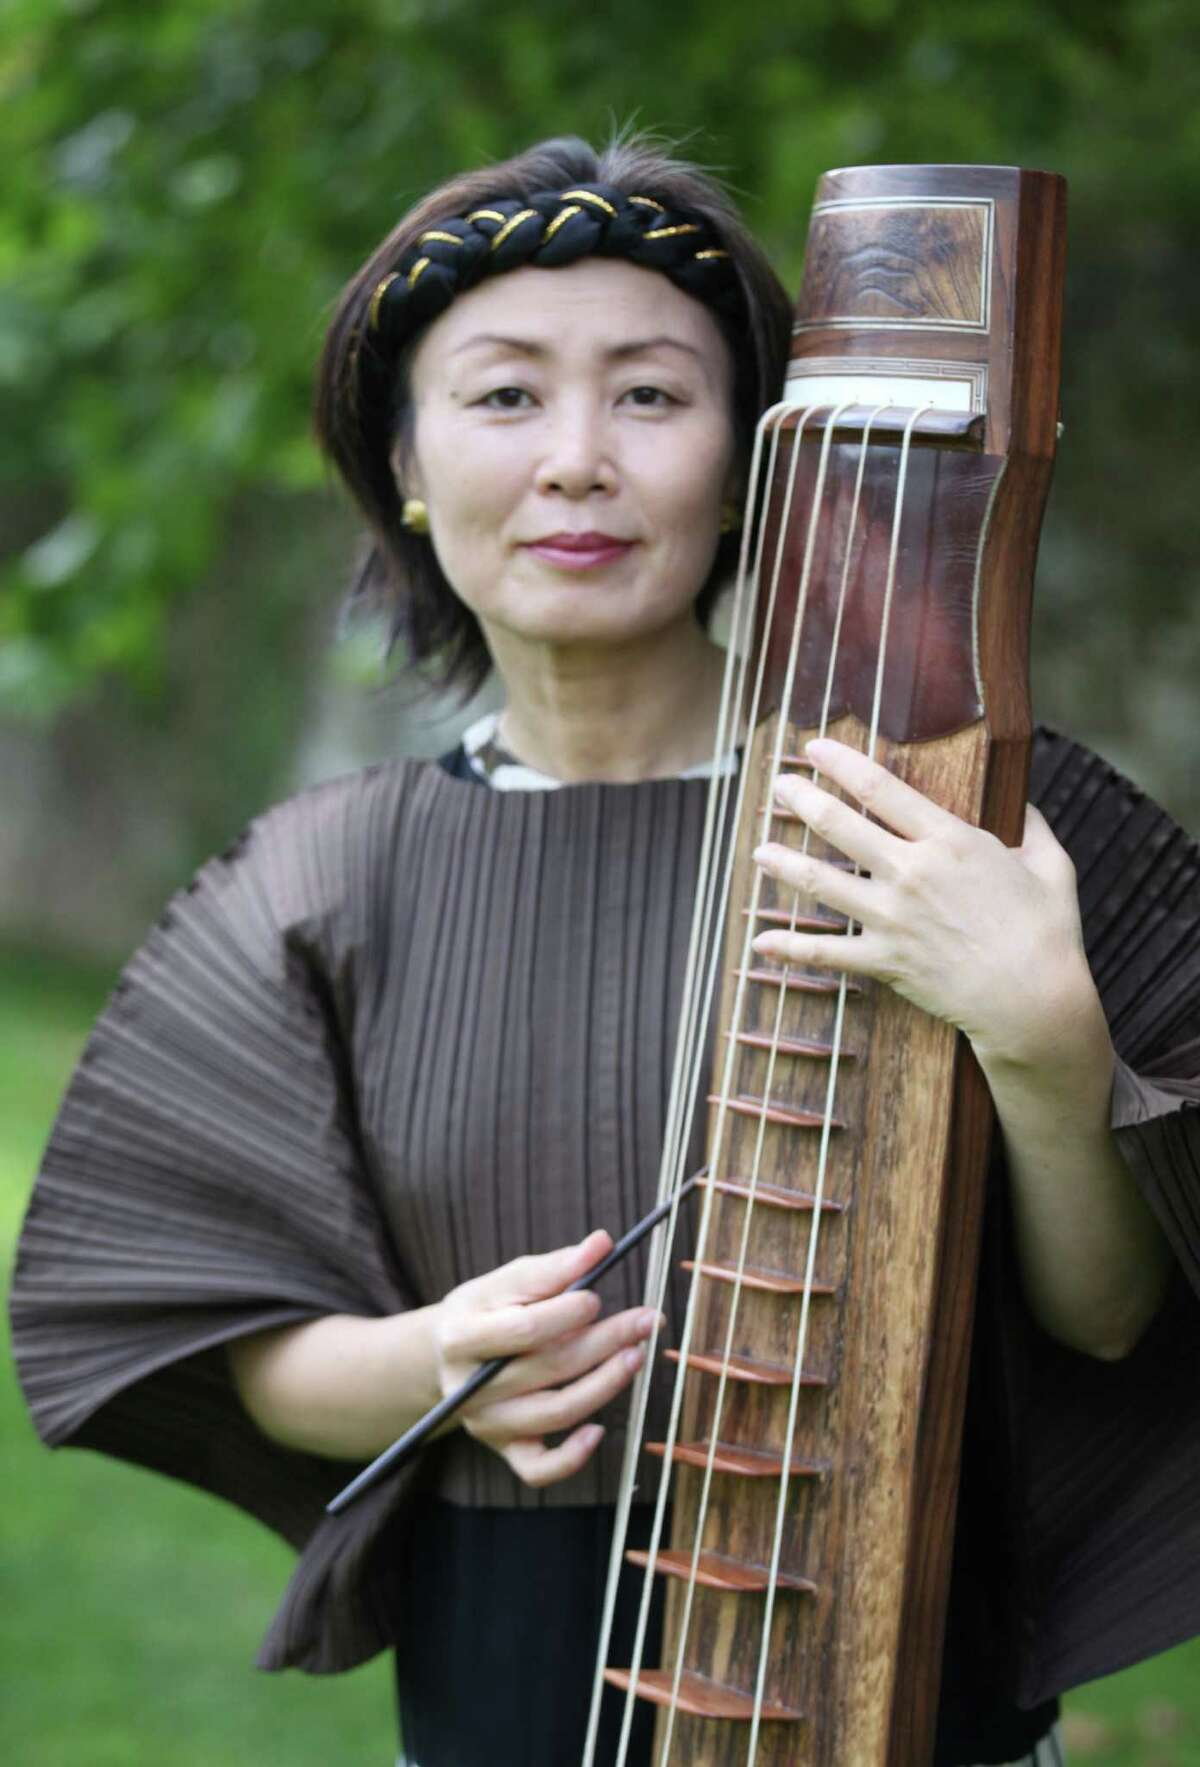 A world premiere of a choral work by composer Jin Hi Kim, pictured with her Korean komungo instrument, takes place Sunday, April 6, with the Mendelssohn Choir of Connecticut at Fairfield University. Her